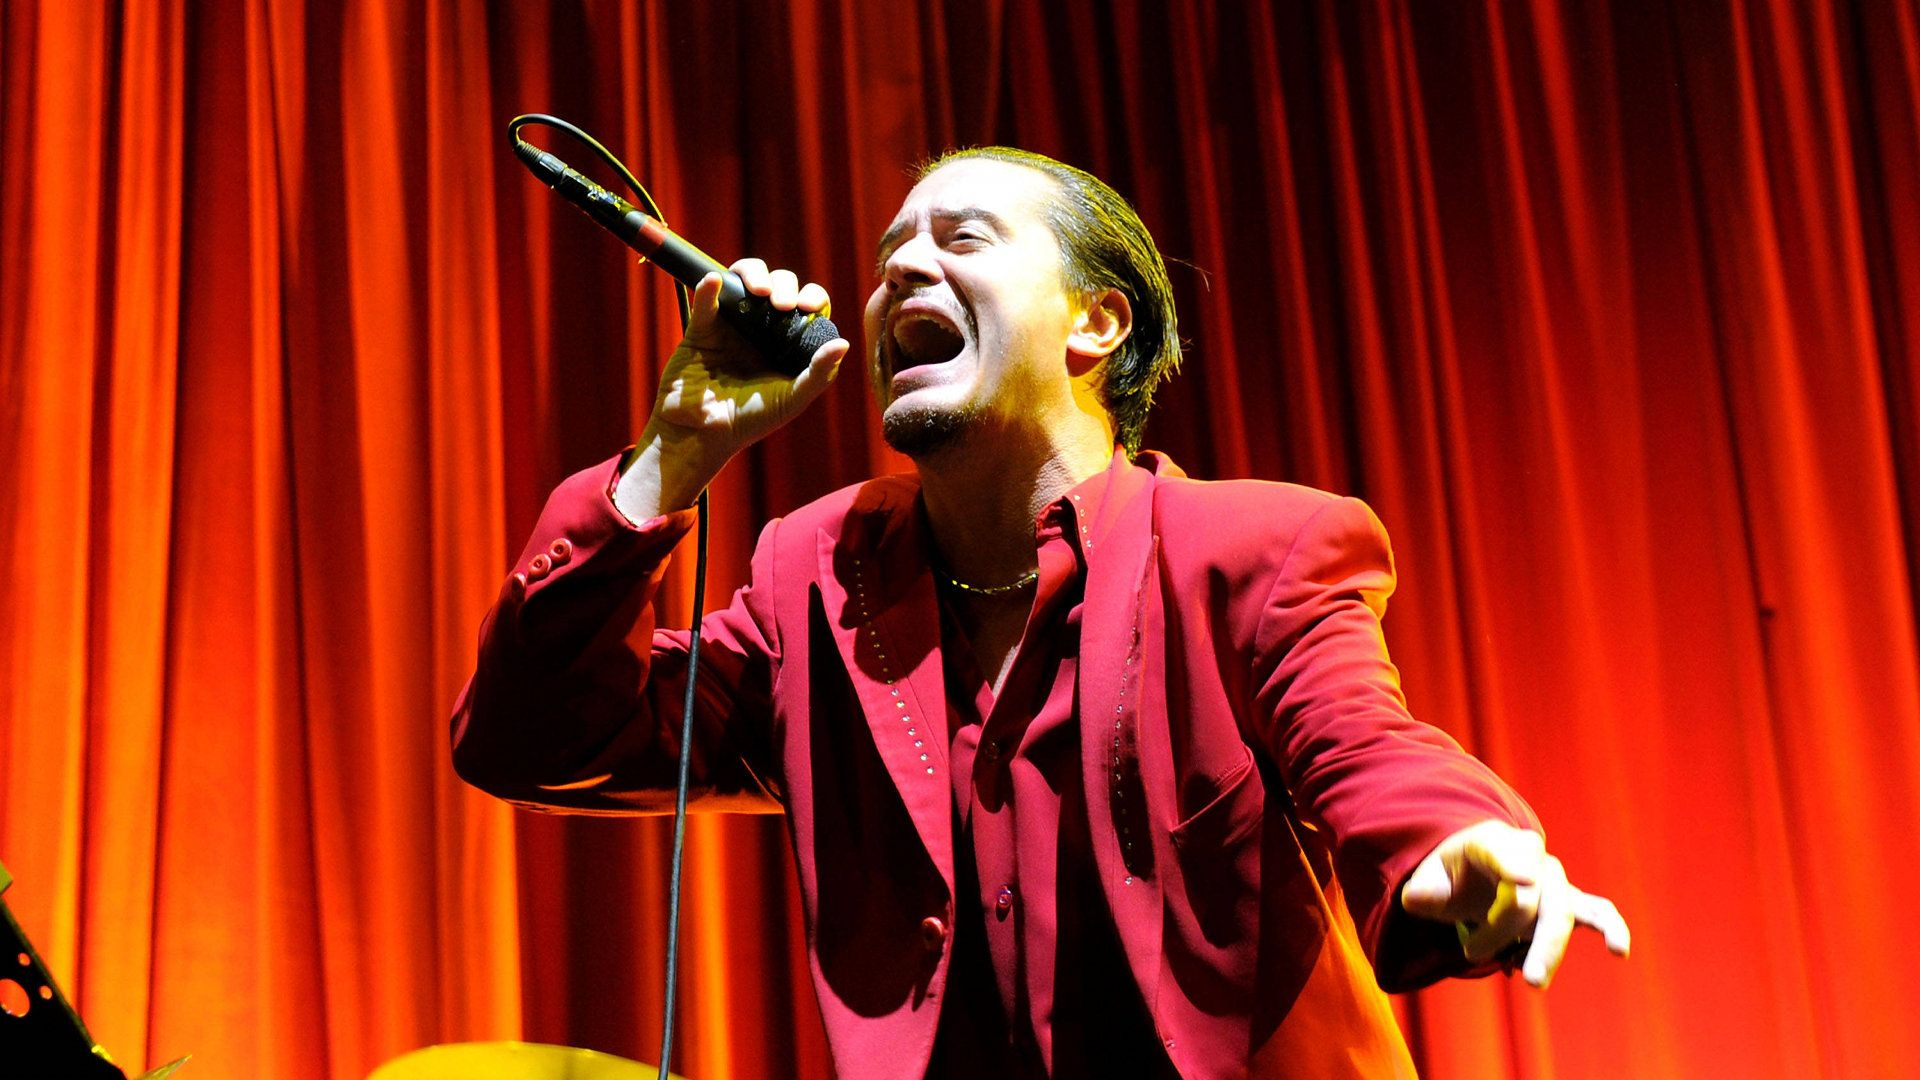 Mike Patton vuelve a Chile con Mondo Cane